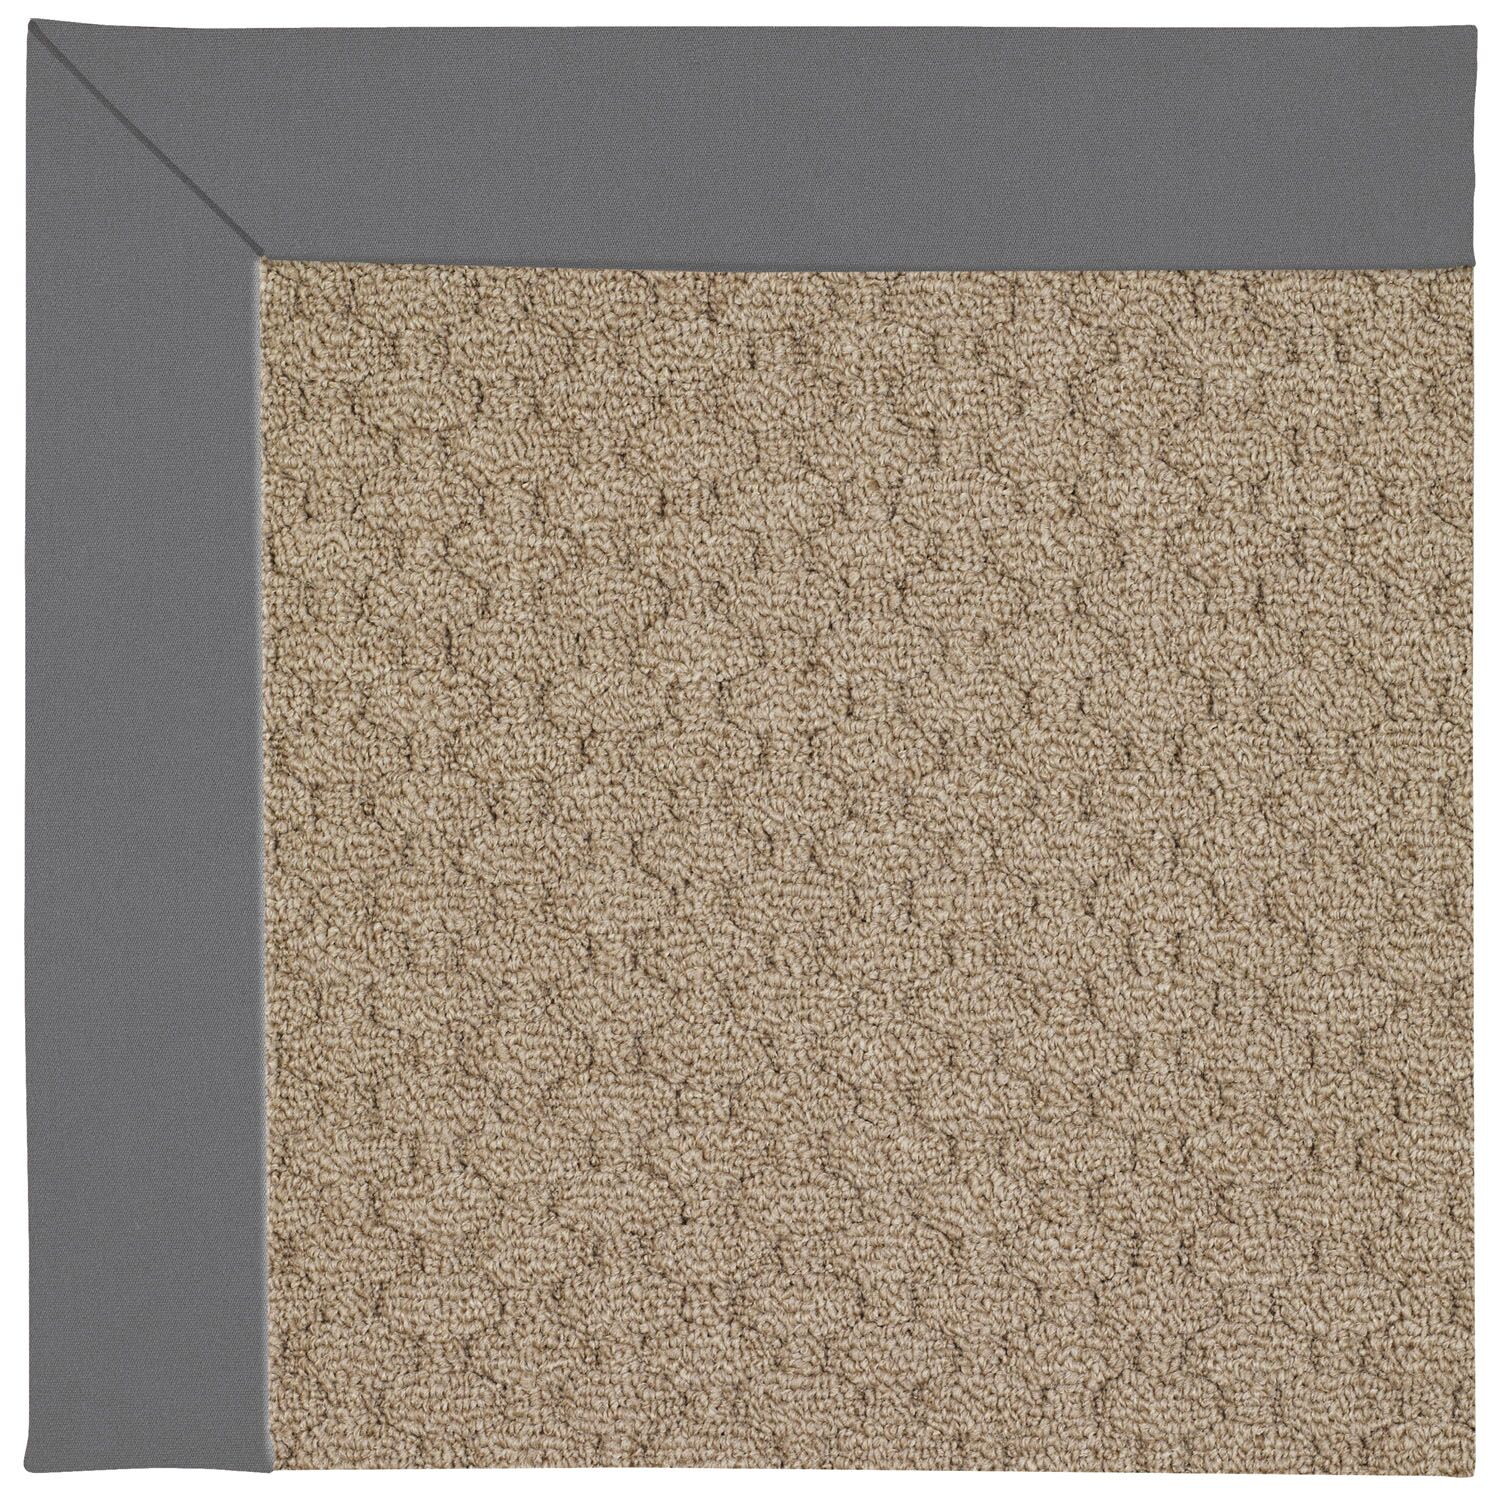 Lisle Machine Tufted Ash Indoor/Outdoor Area Rug Rug Size: Rectangle 12' x 15'